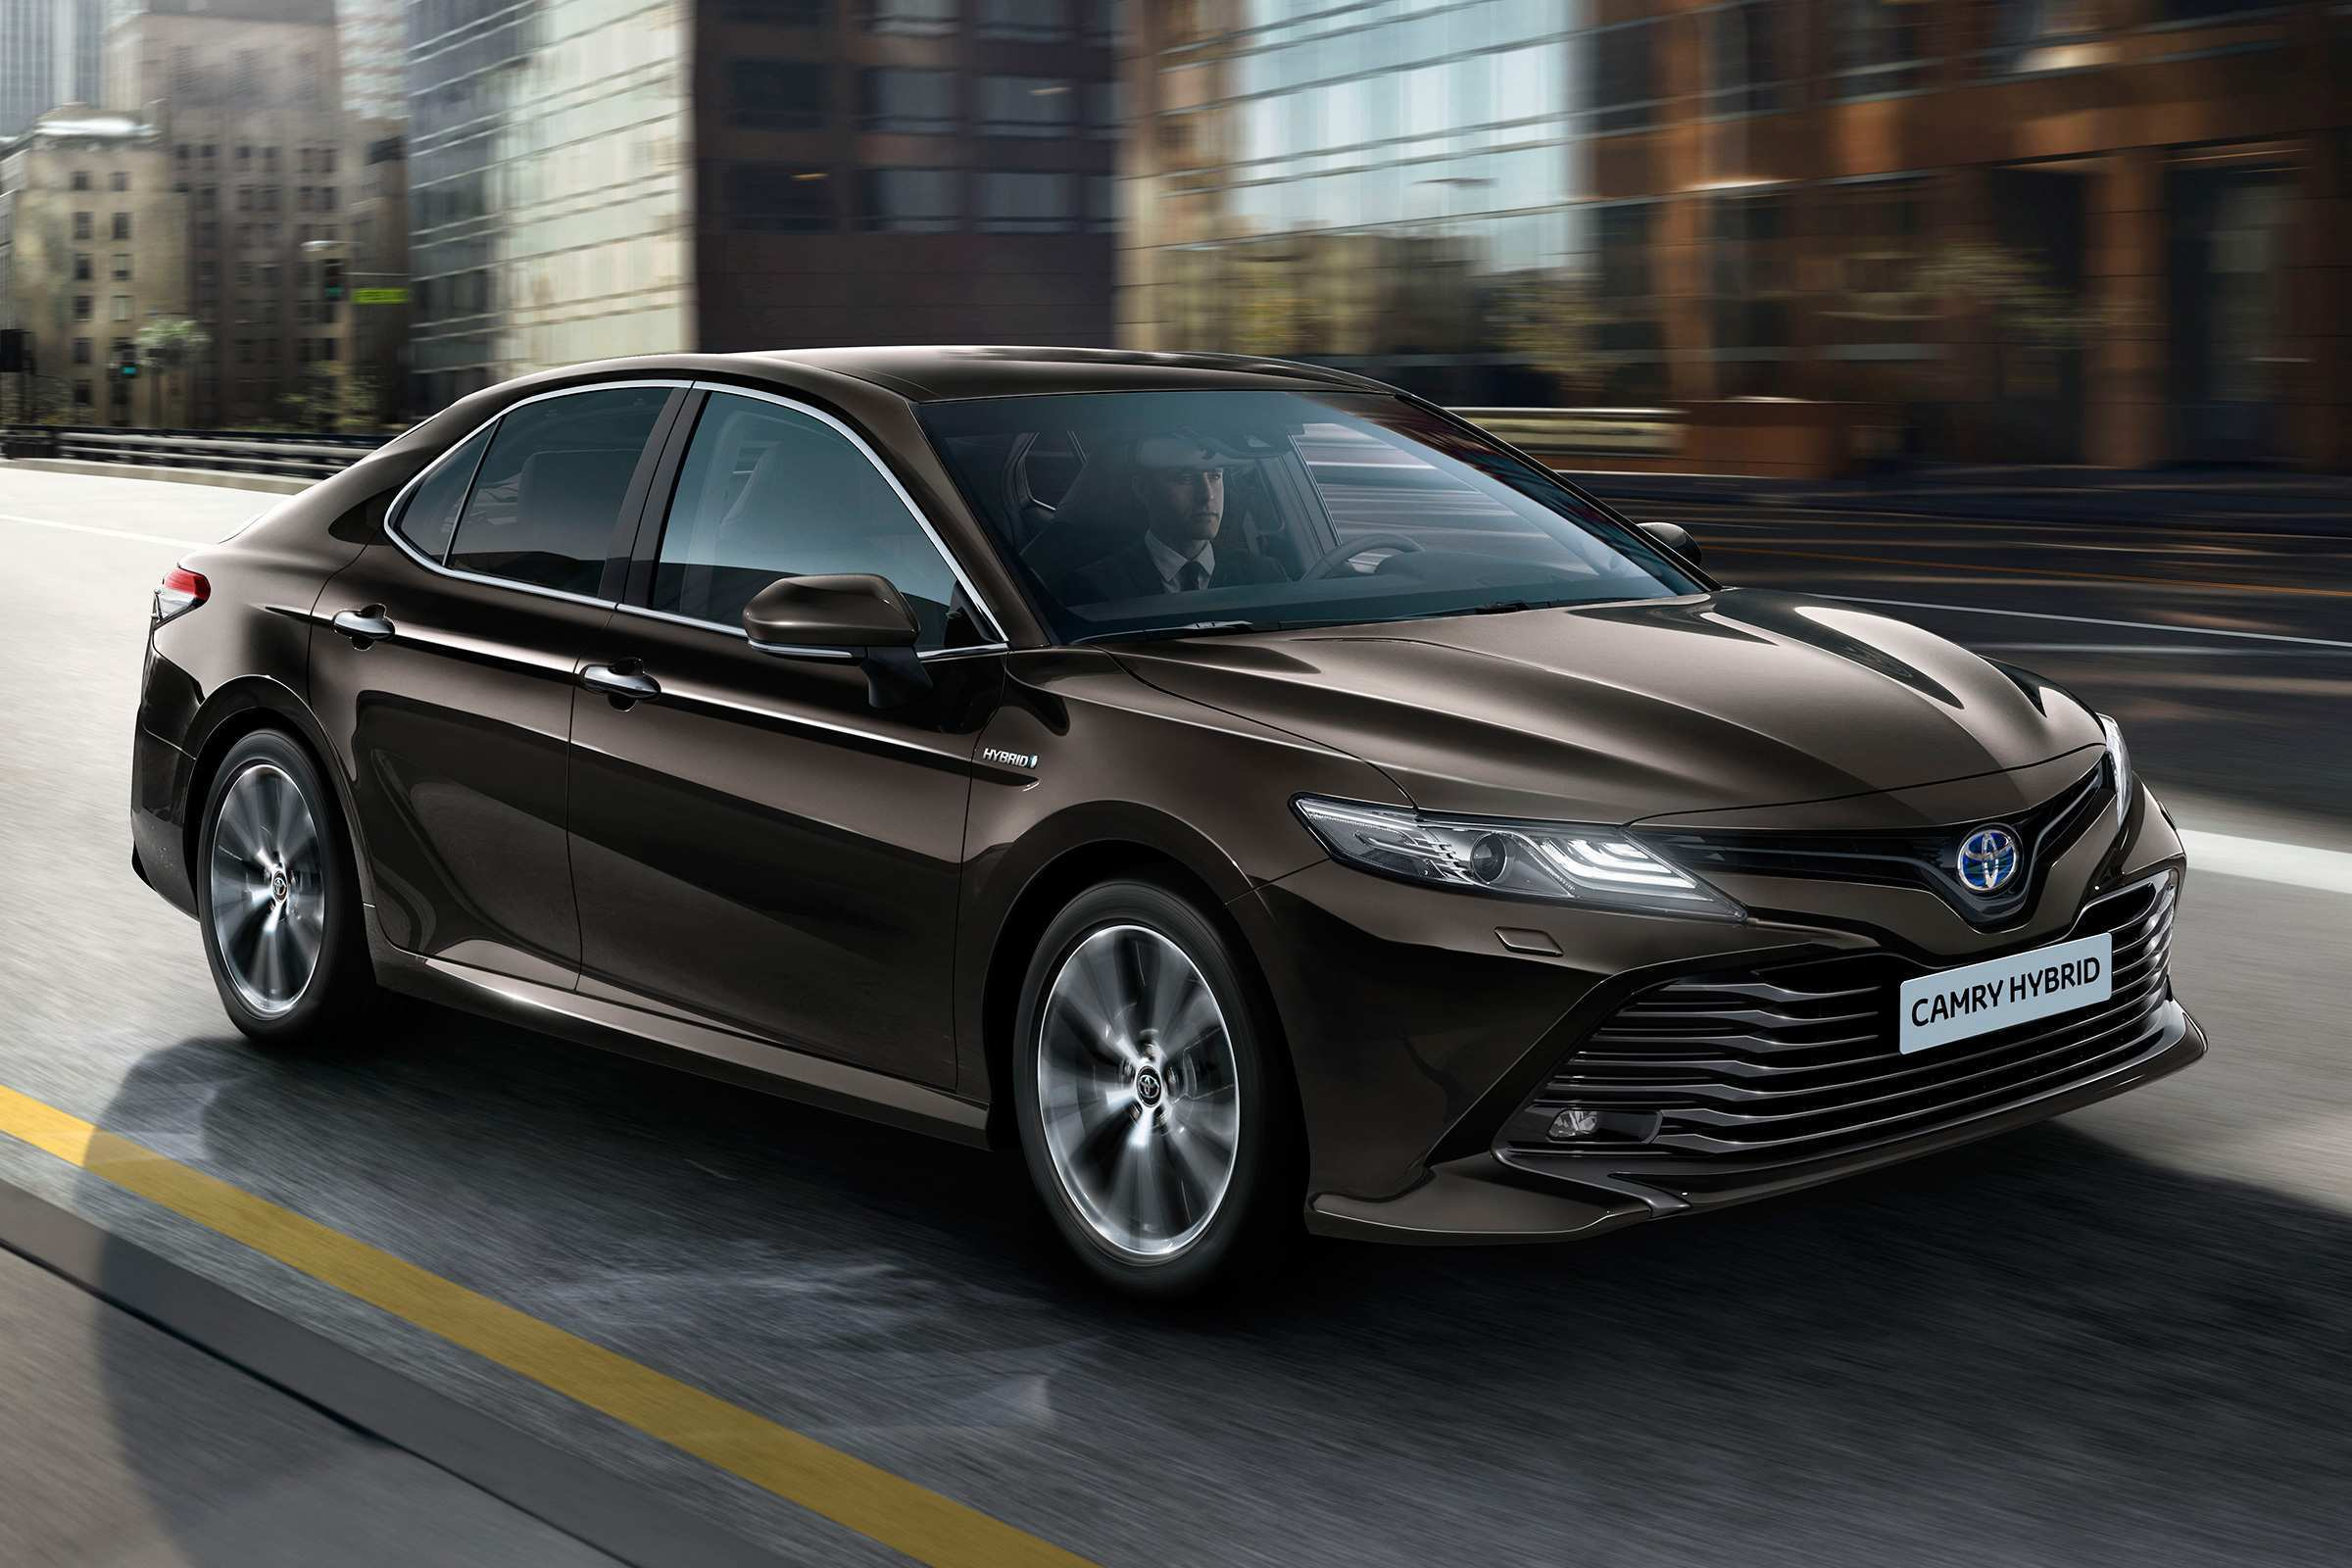 13 All New The Toyota 2019 Europa Picture Release Date And Review Configurations by The Toyota 2019 Europa Picture Release Date And Review